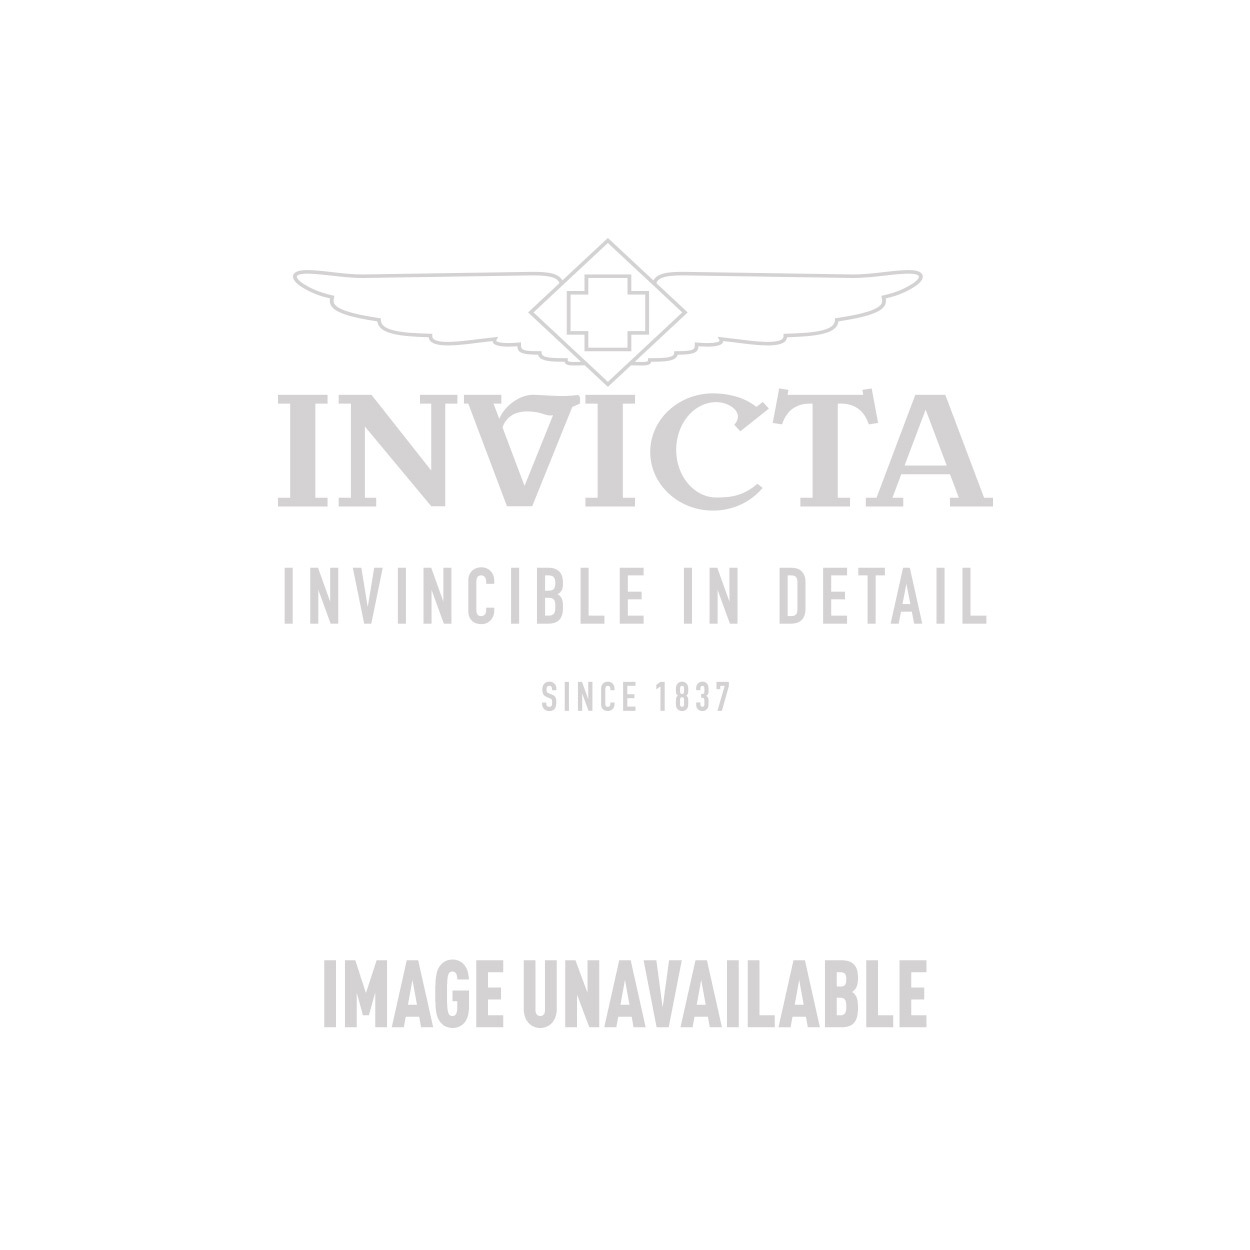 Invicta Specialty Quartz Watch - Gold case with Gold tone Stainless Steel band - Model 1016